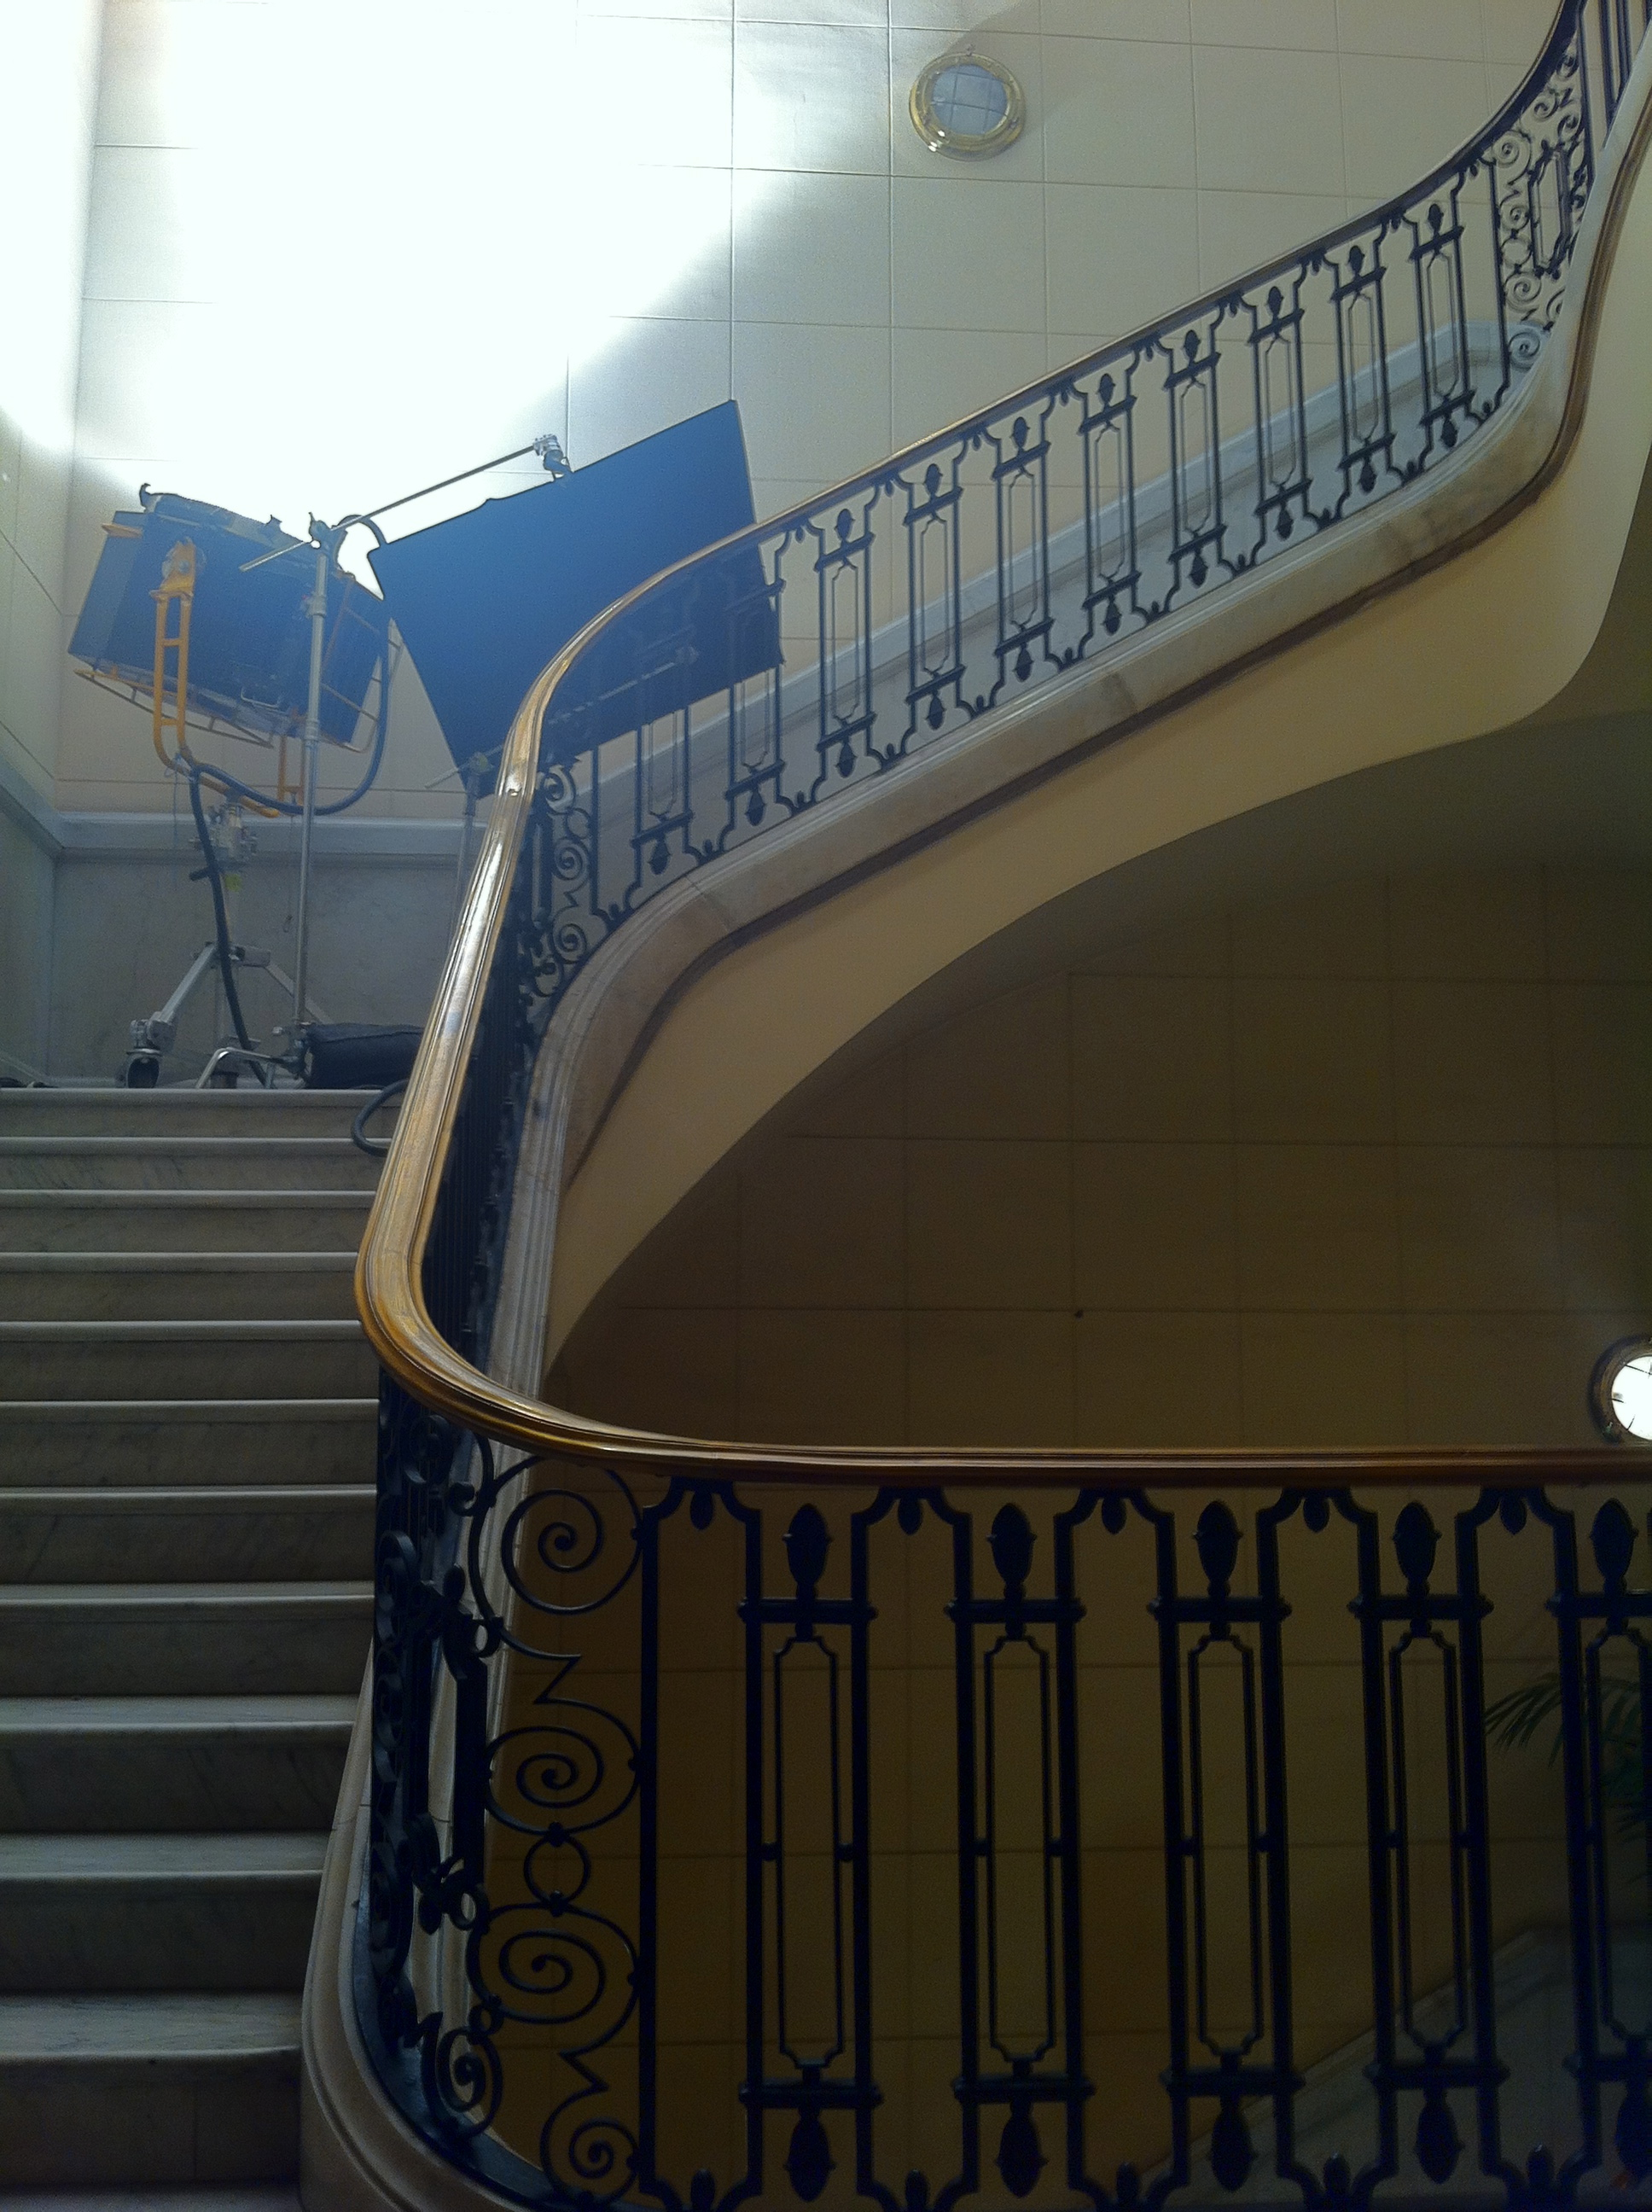 Stairwell on the set of Grand Piano, photo by Alex Winter